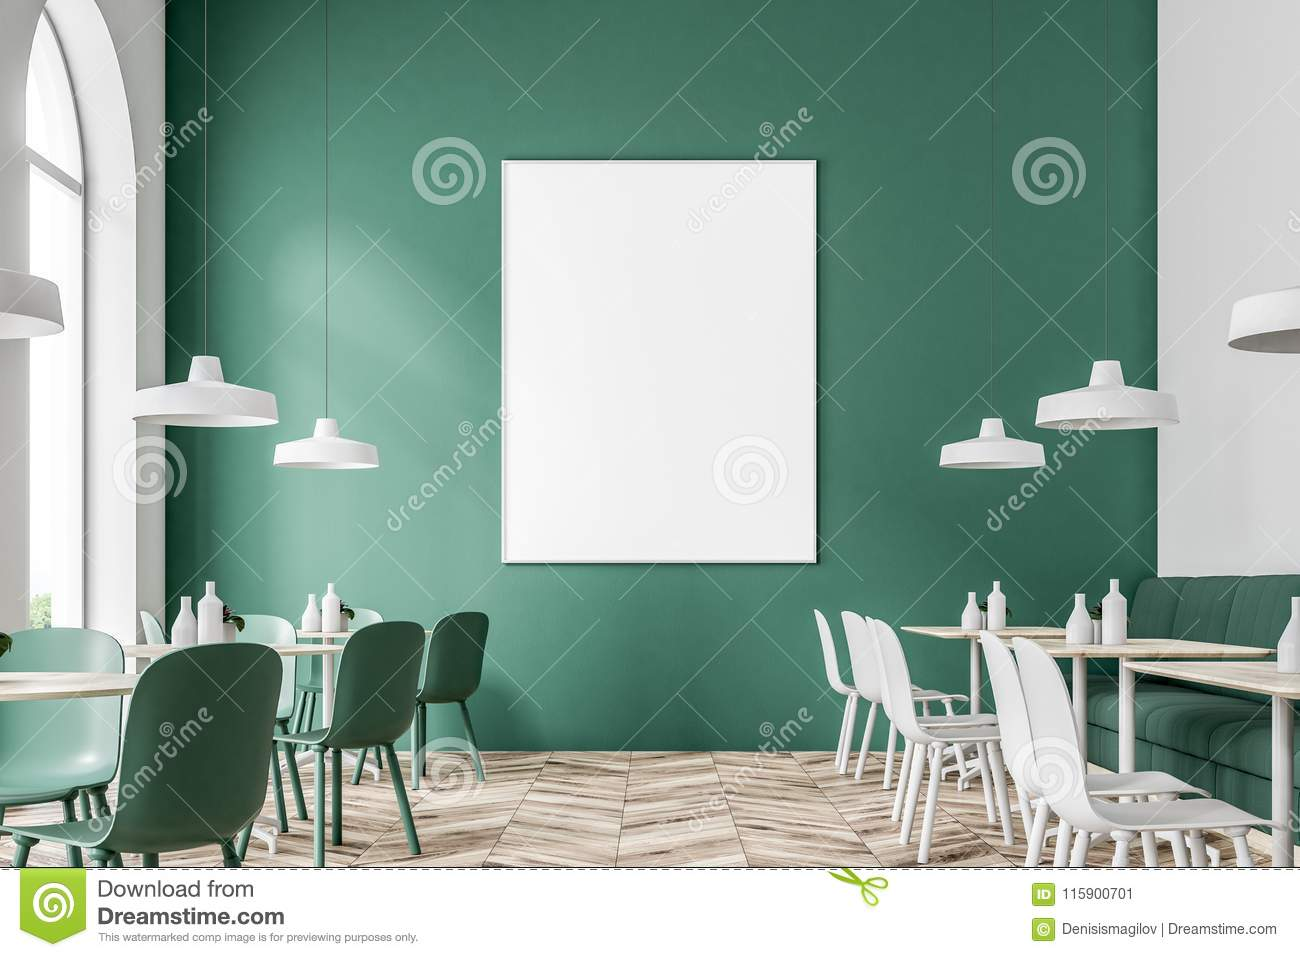 Green And White Cafe Interior Poster Stock Illustration Illustration Of Business House 115900701